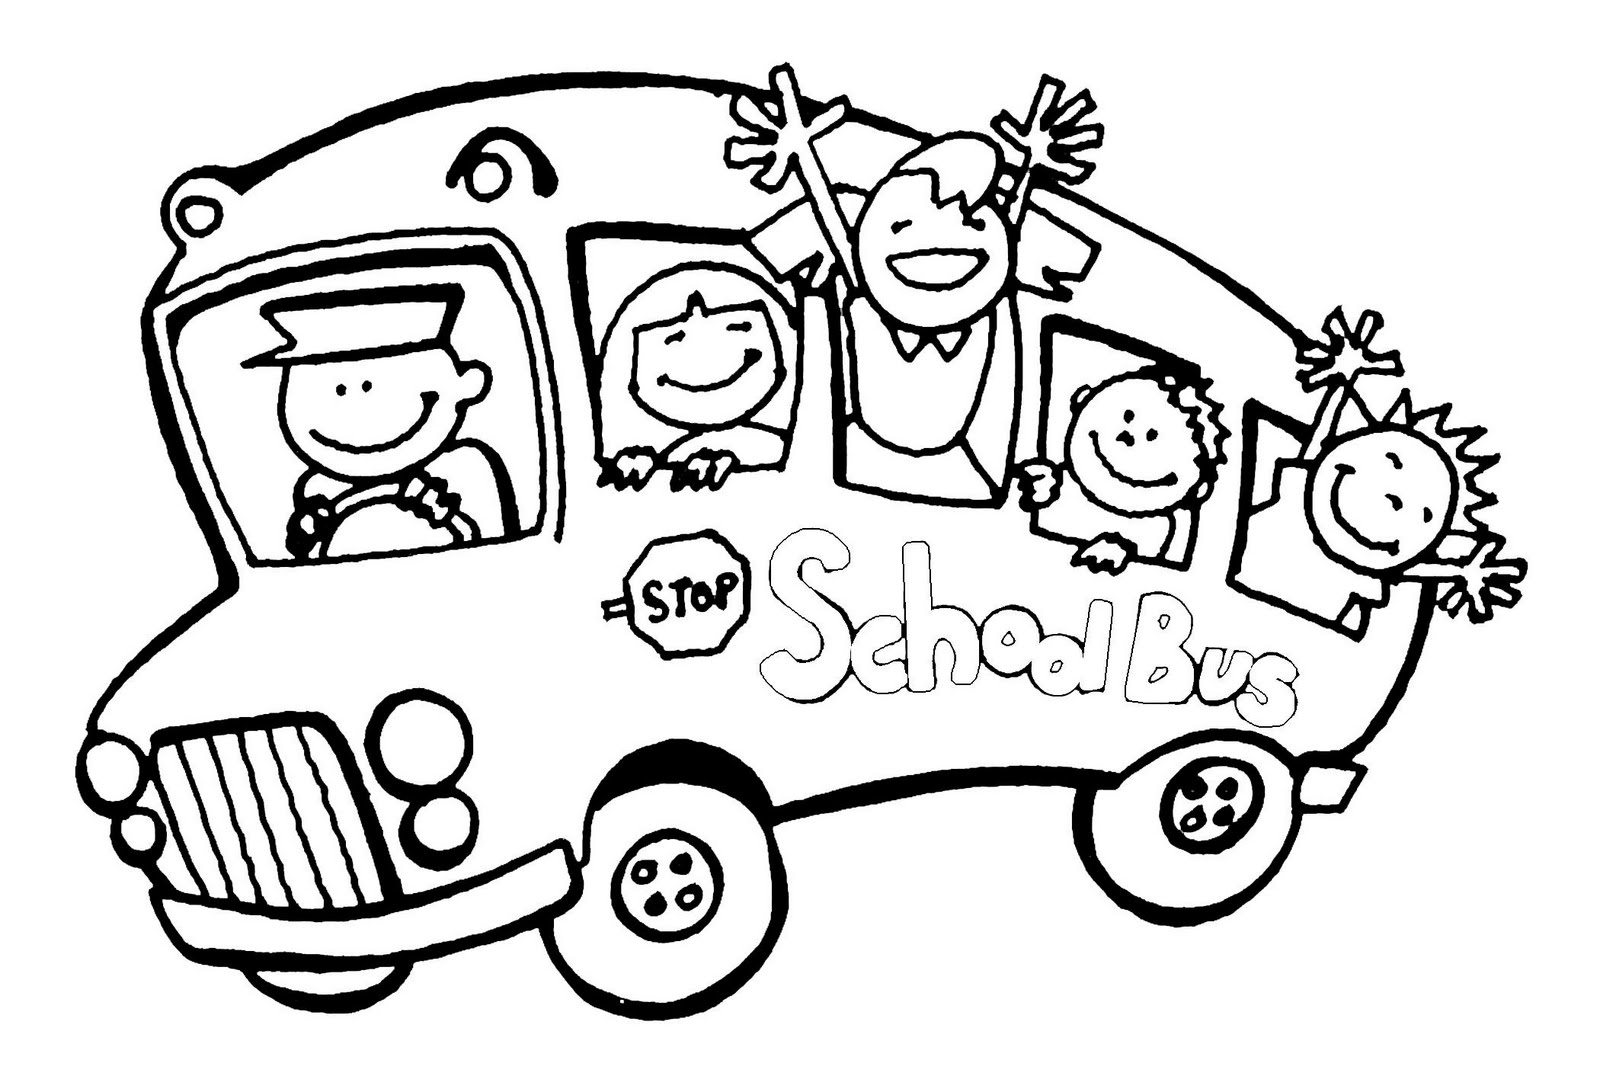 School Bus Drawing For Kids at GetDrawings.com | Free for personal ...